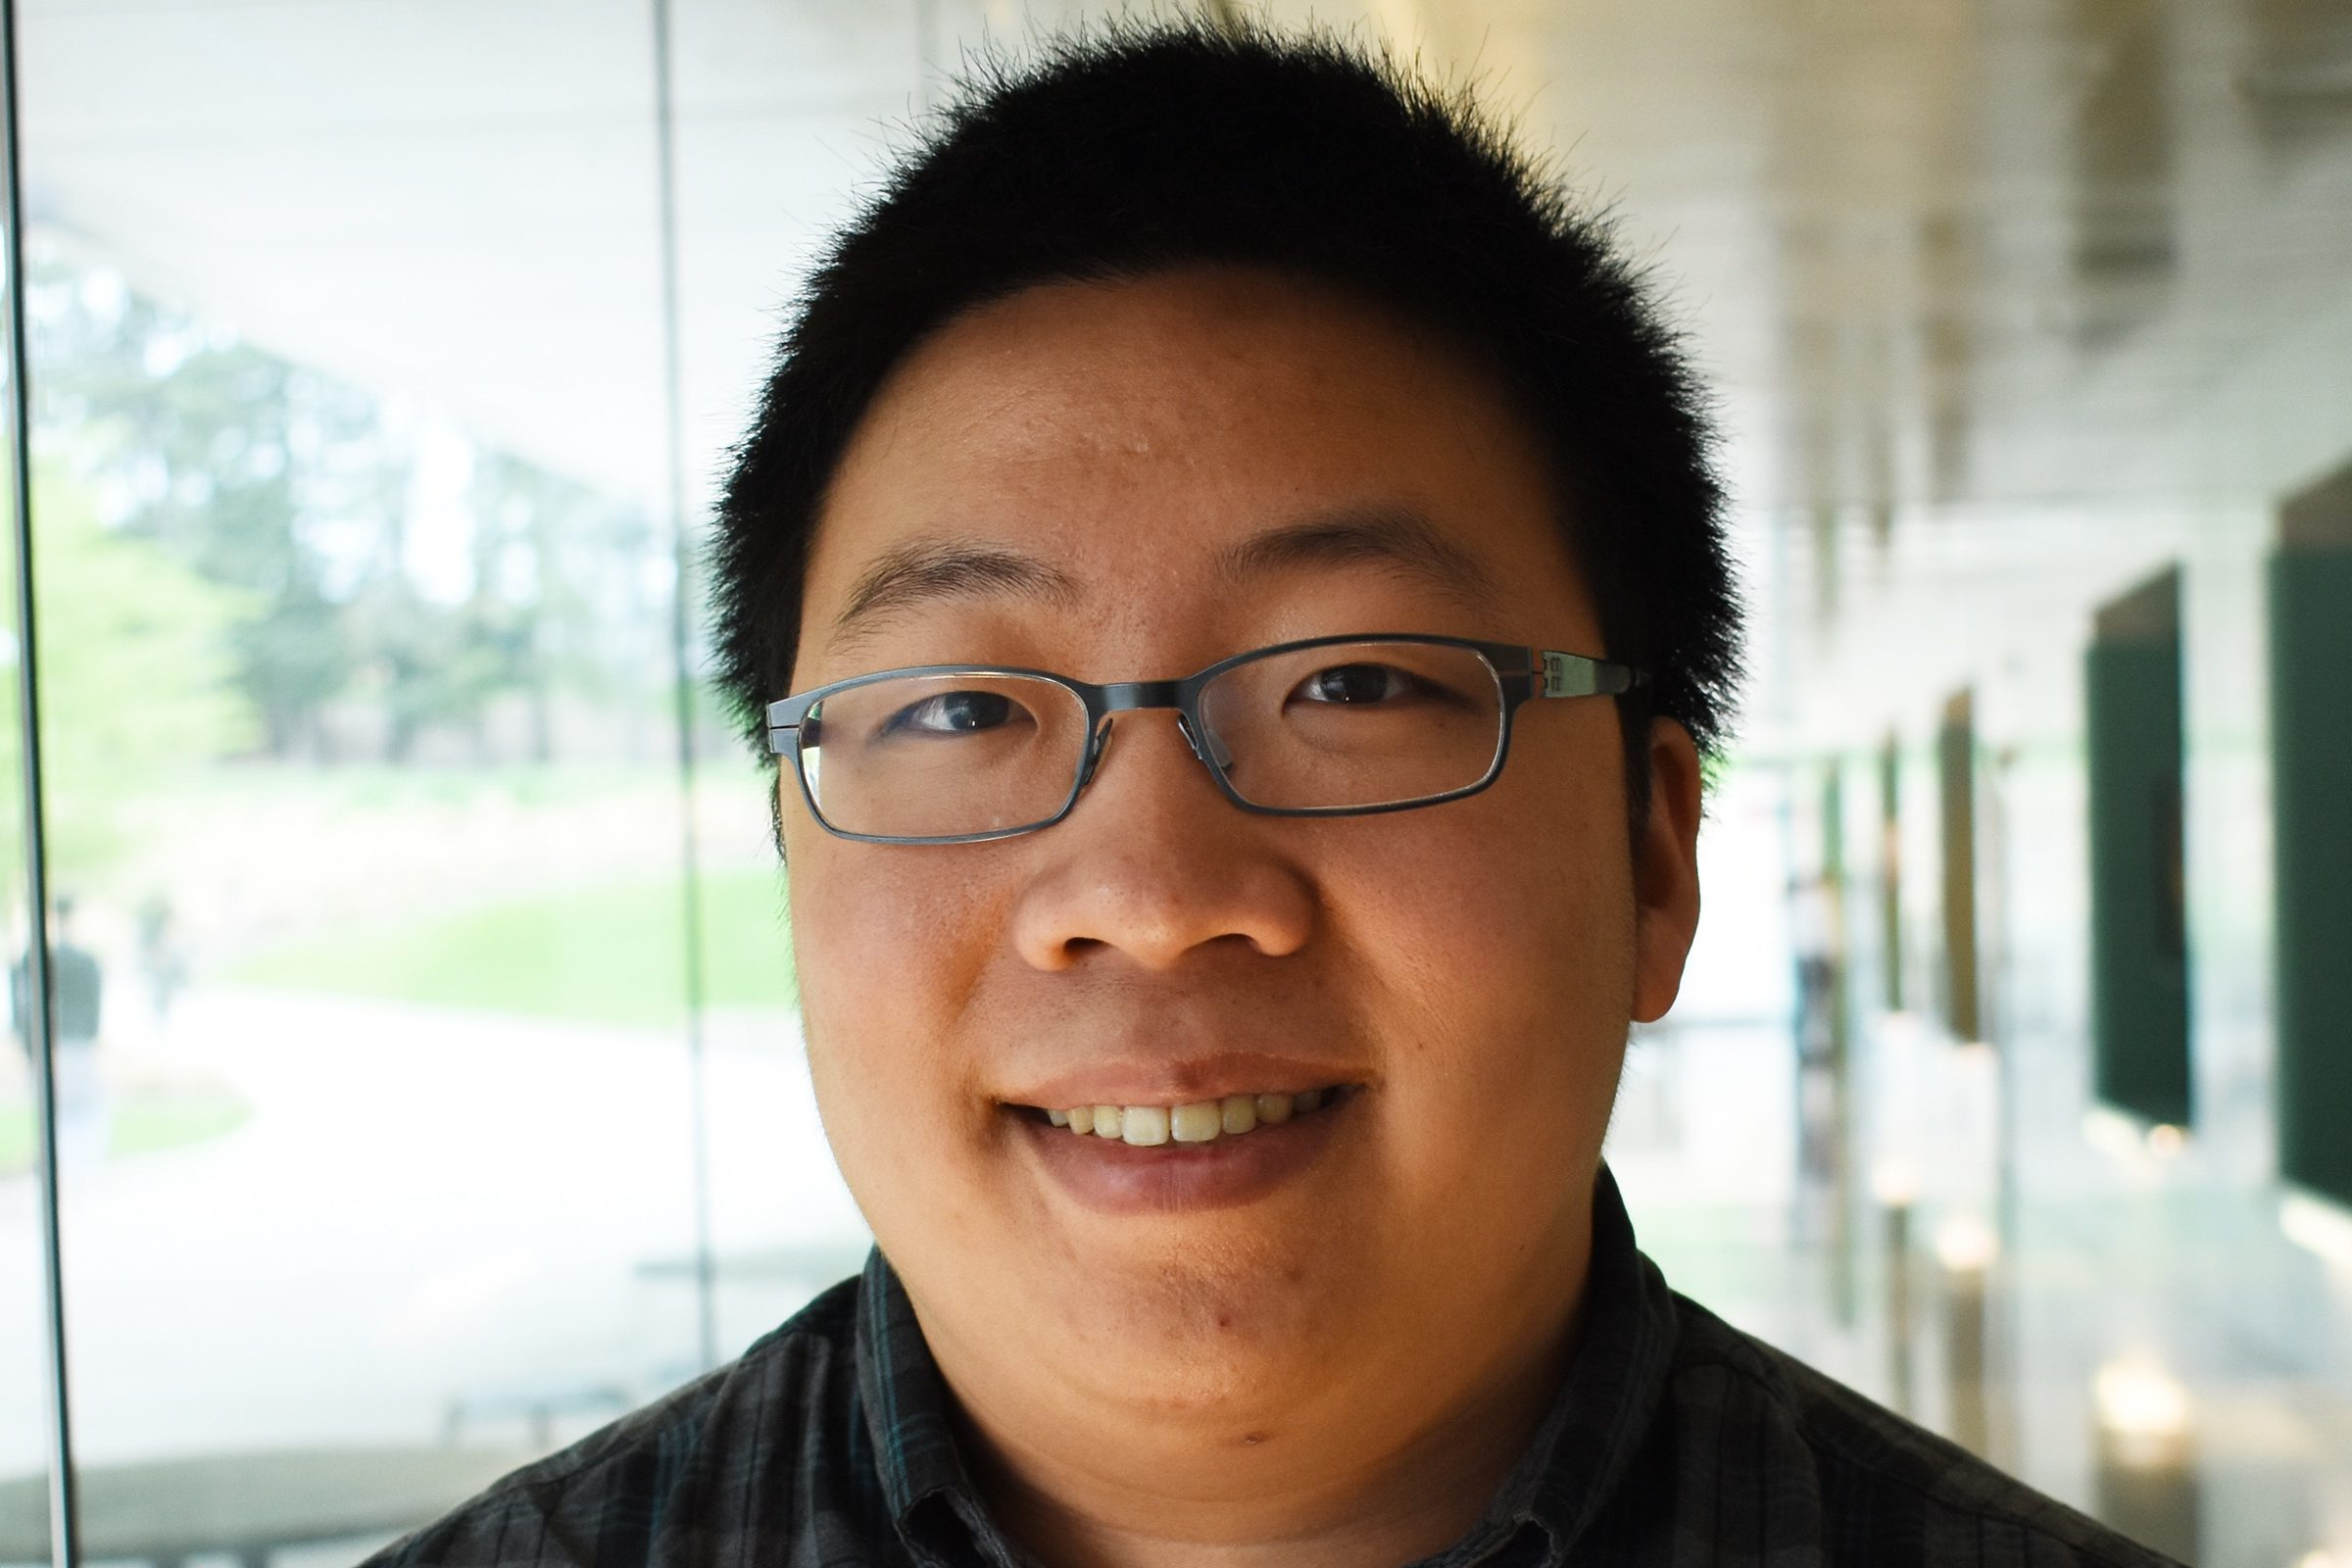 Glen Chou receives the NDSEG Fellowship to improve the safety of autonomous systems